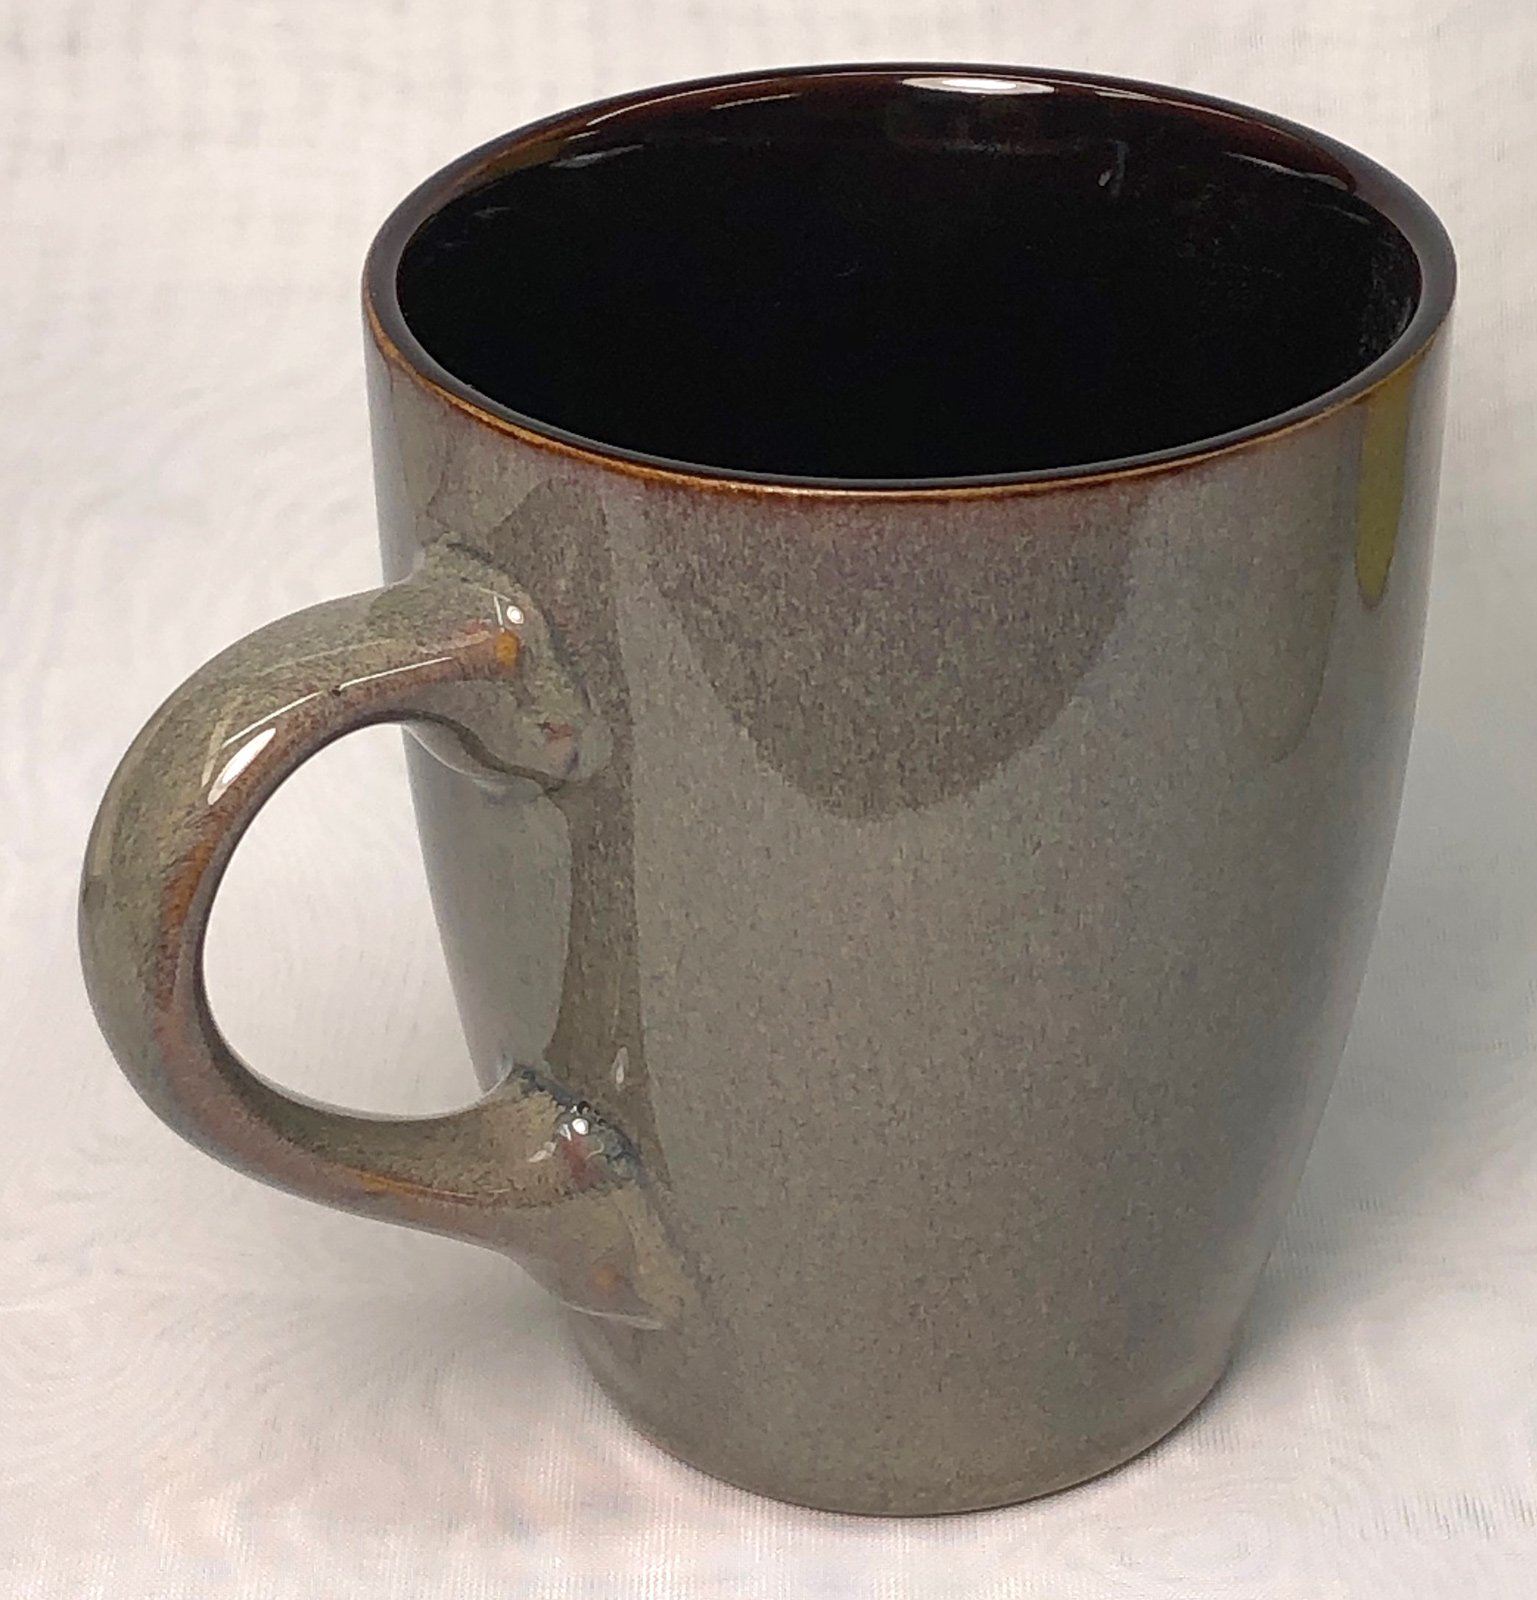 A commercial rutile-glazed mug